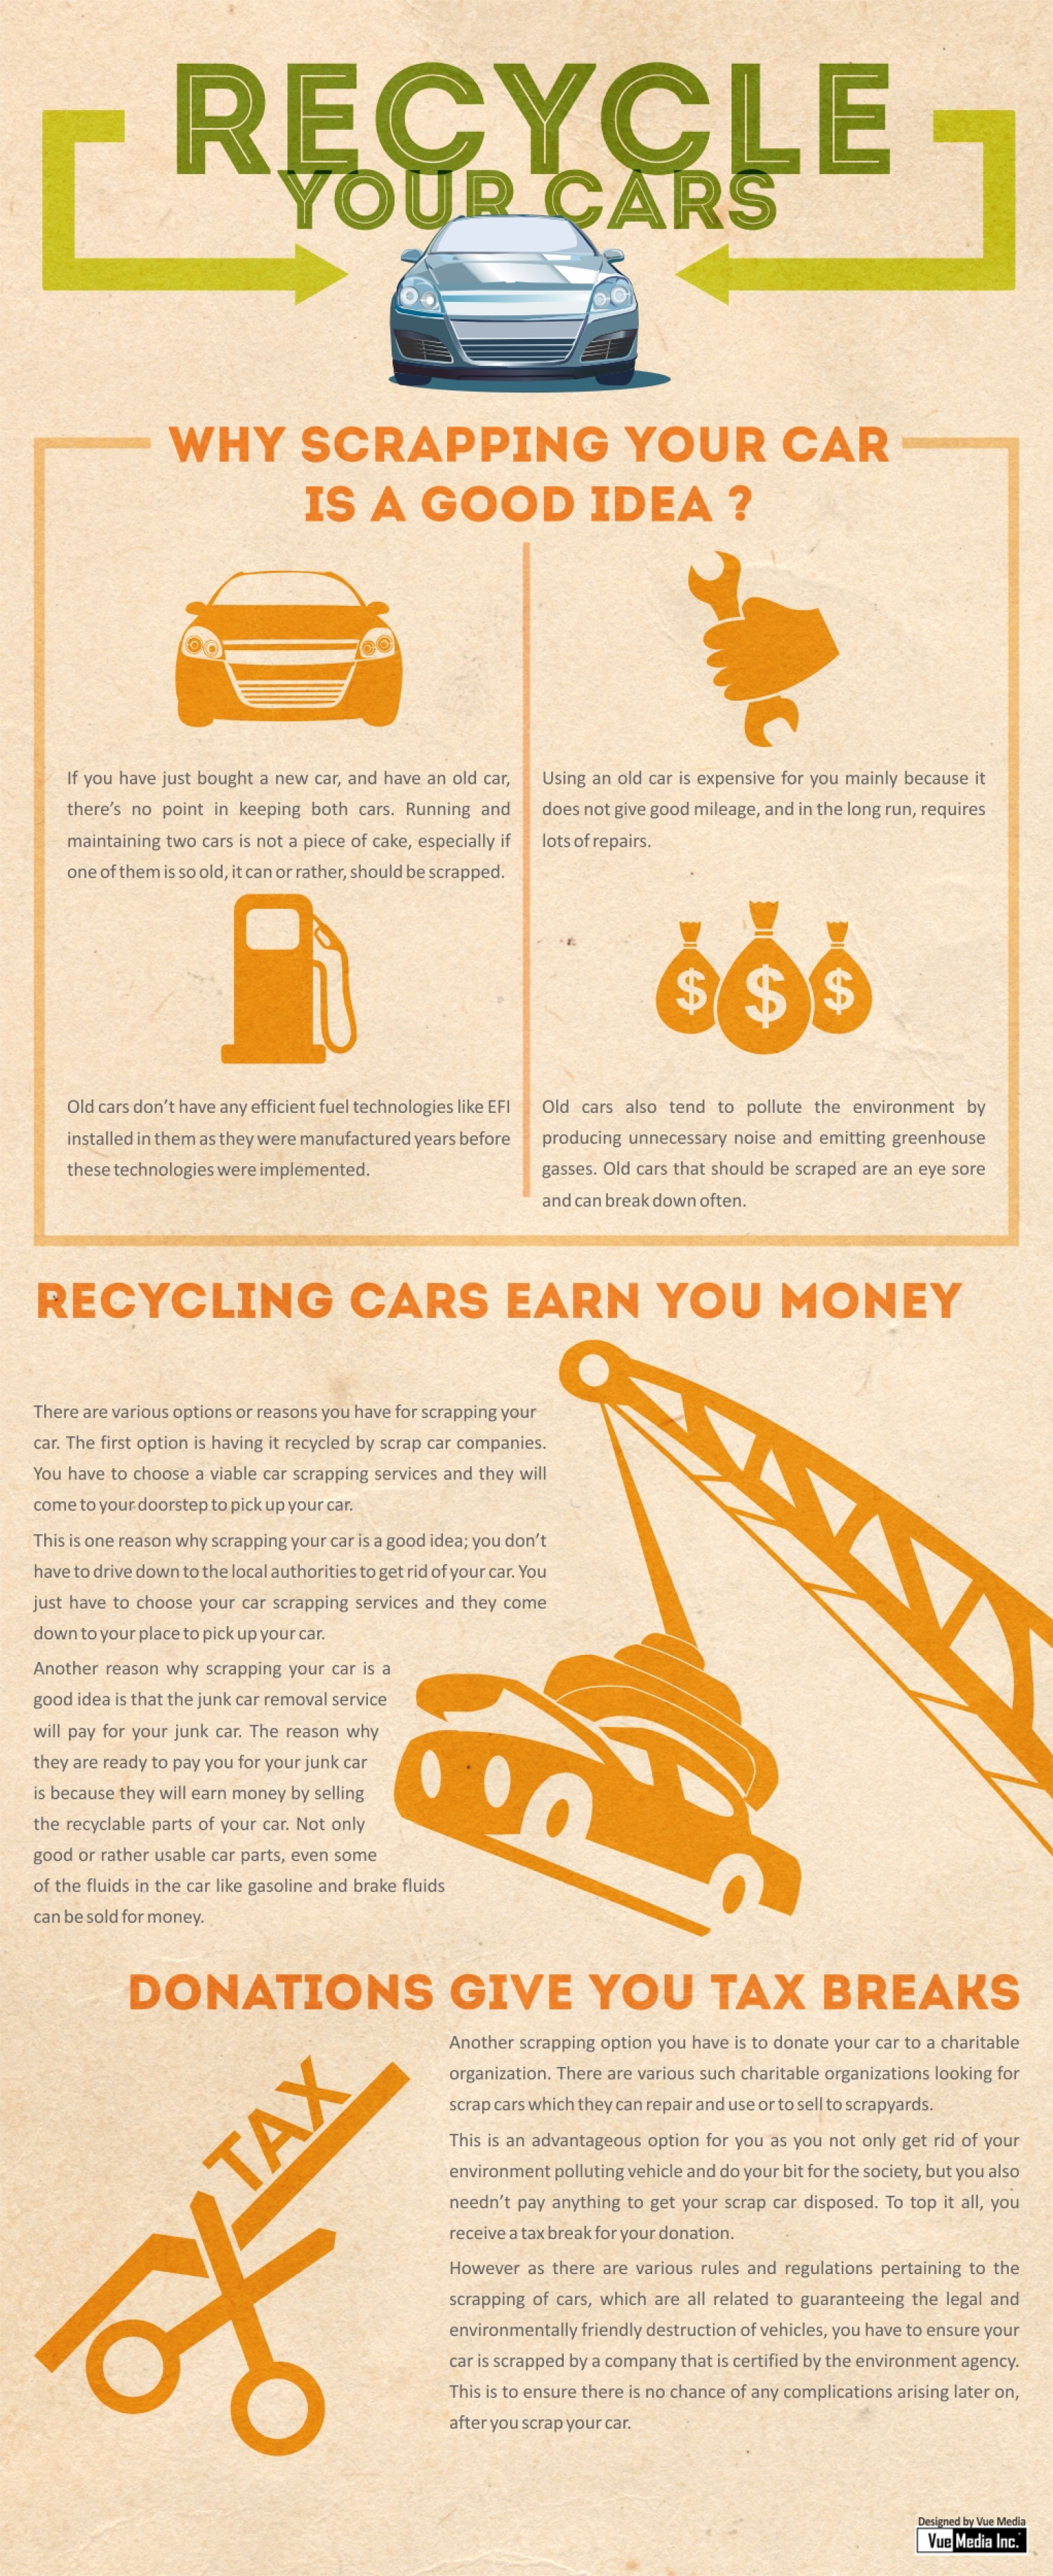 Recycle your cars | Visual.ly